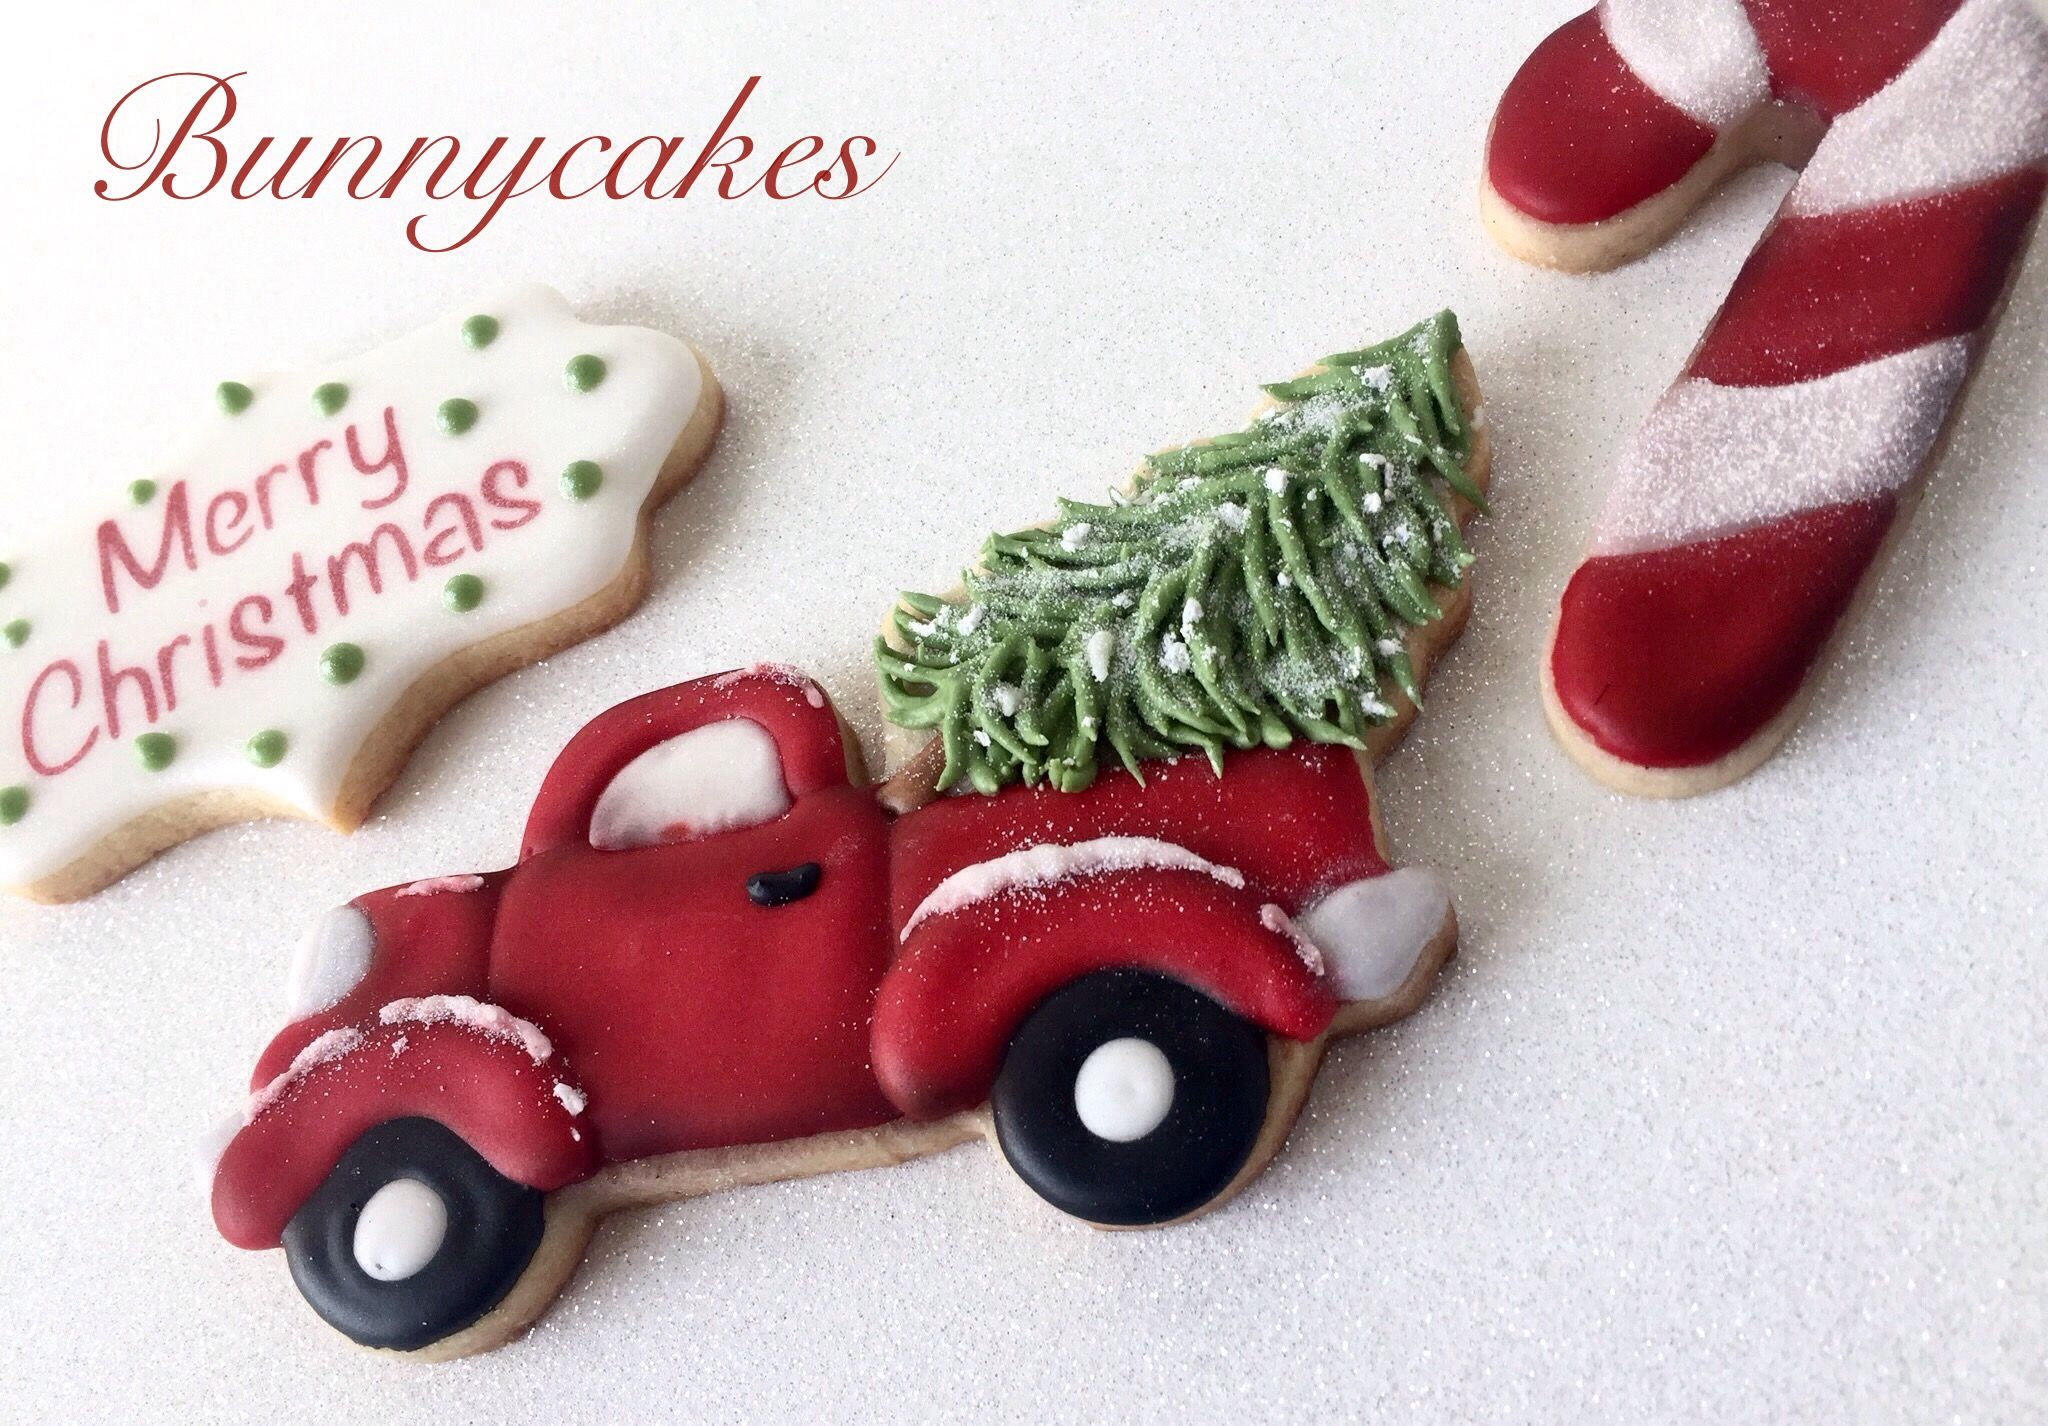 Vintage Style Sugar Cookies With Old Fashioned Red Pickup Truck And